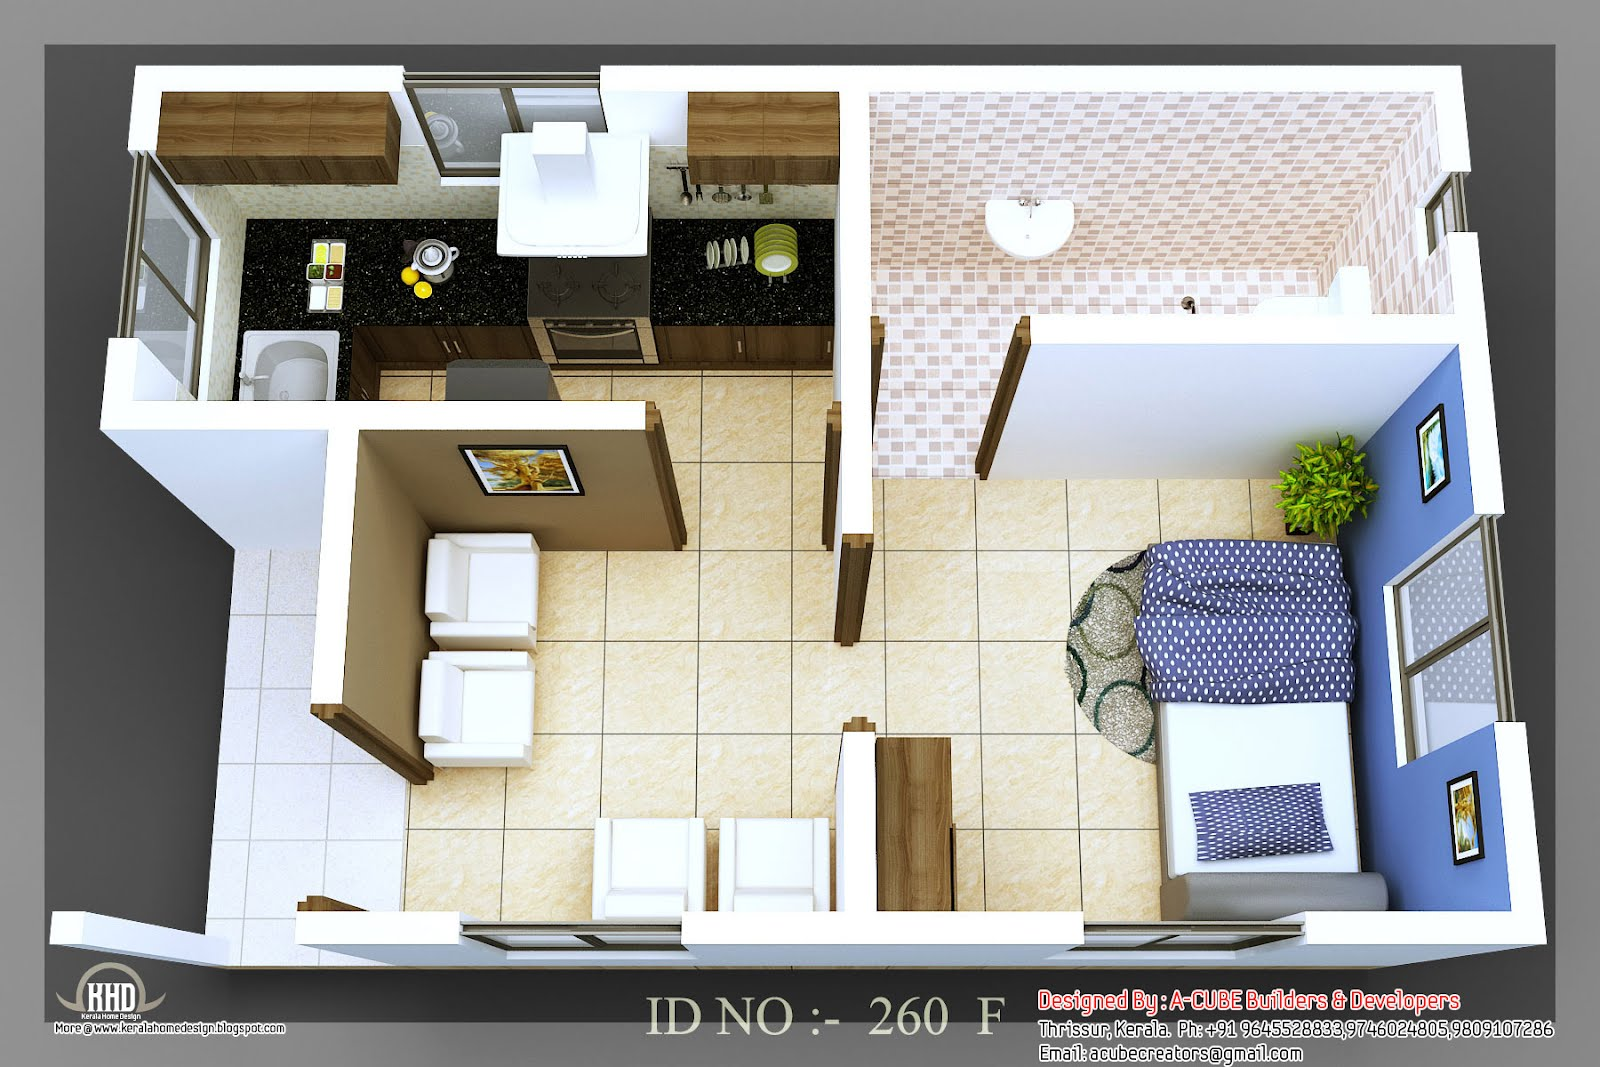 3d isometric views of small house plans home appliance for Small house design drawing